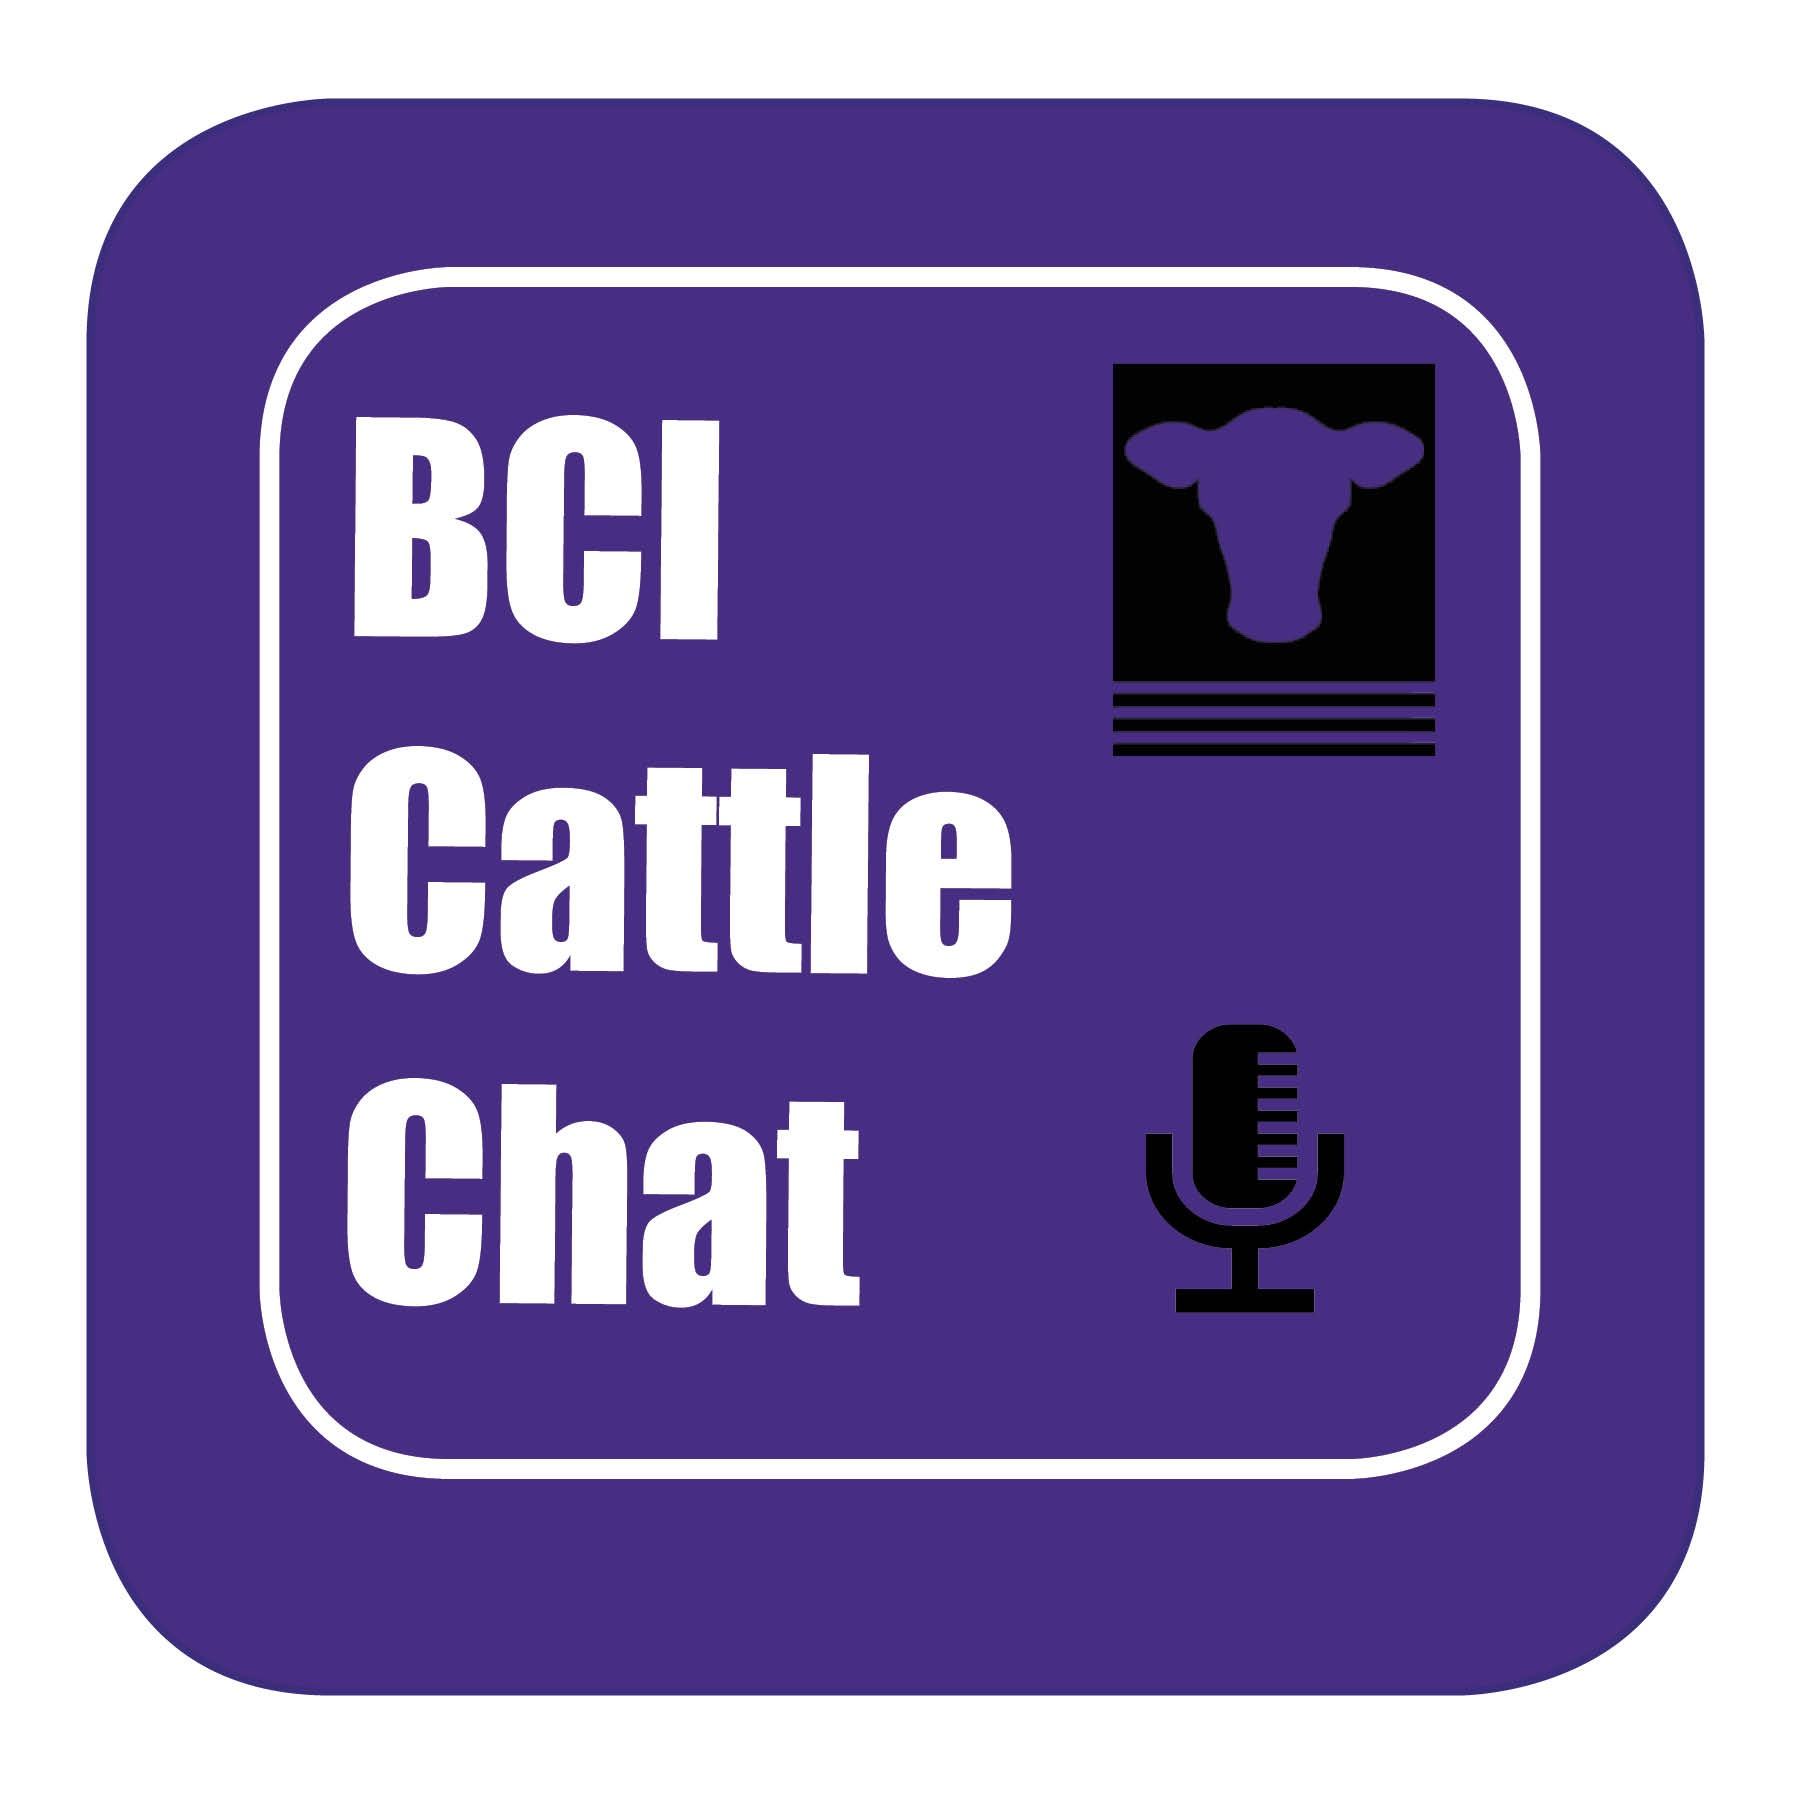 BCI Cattle Chat - Episode 4